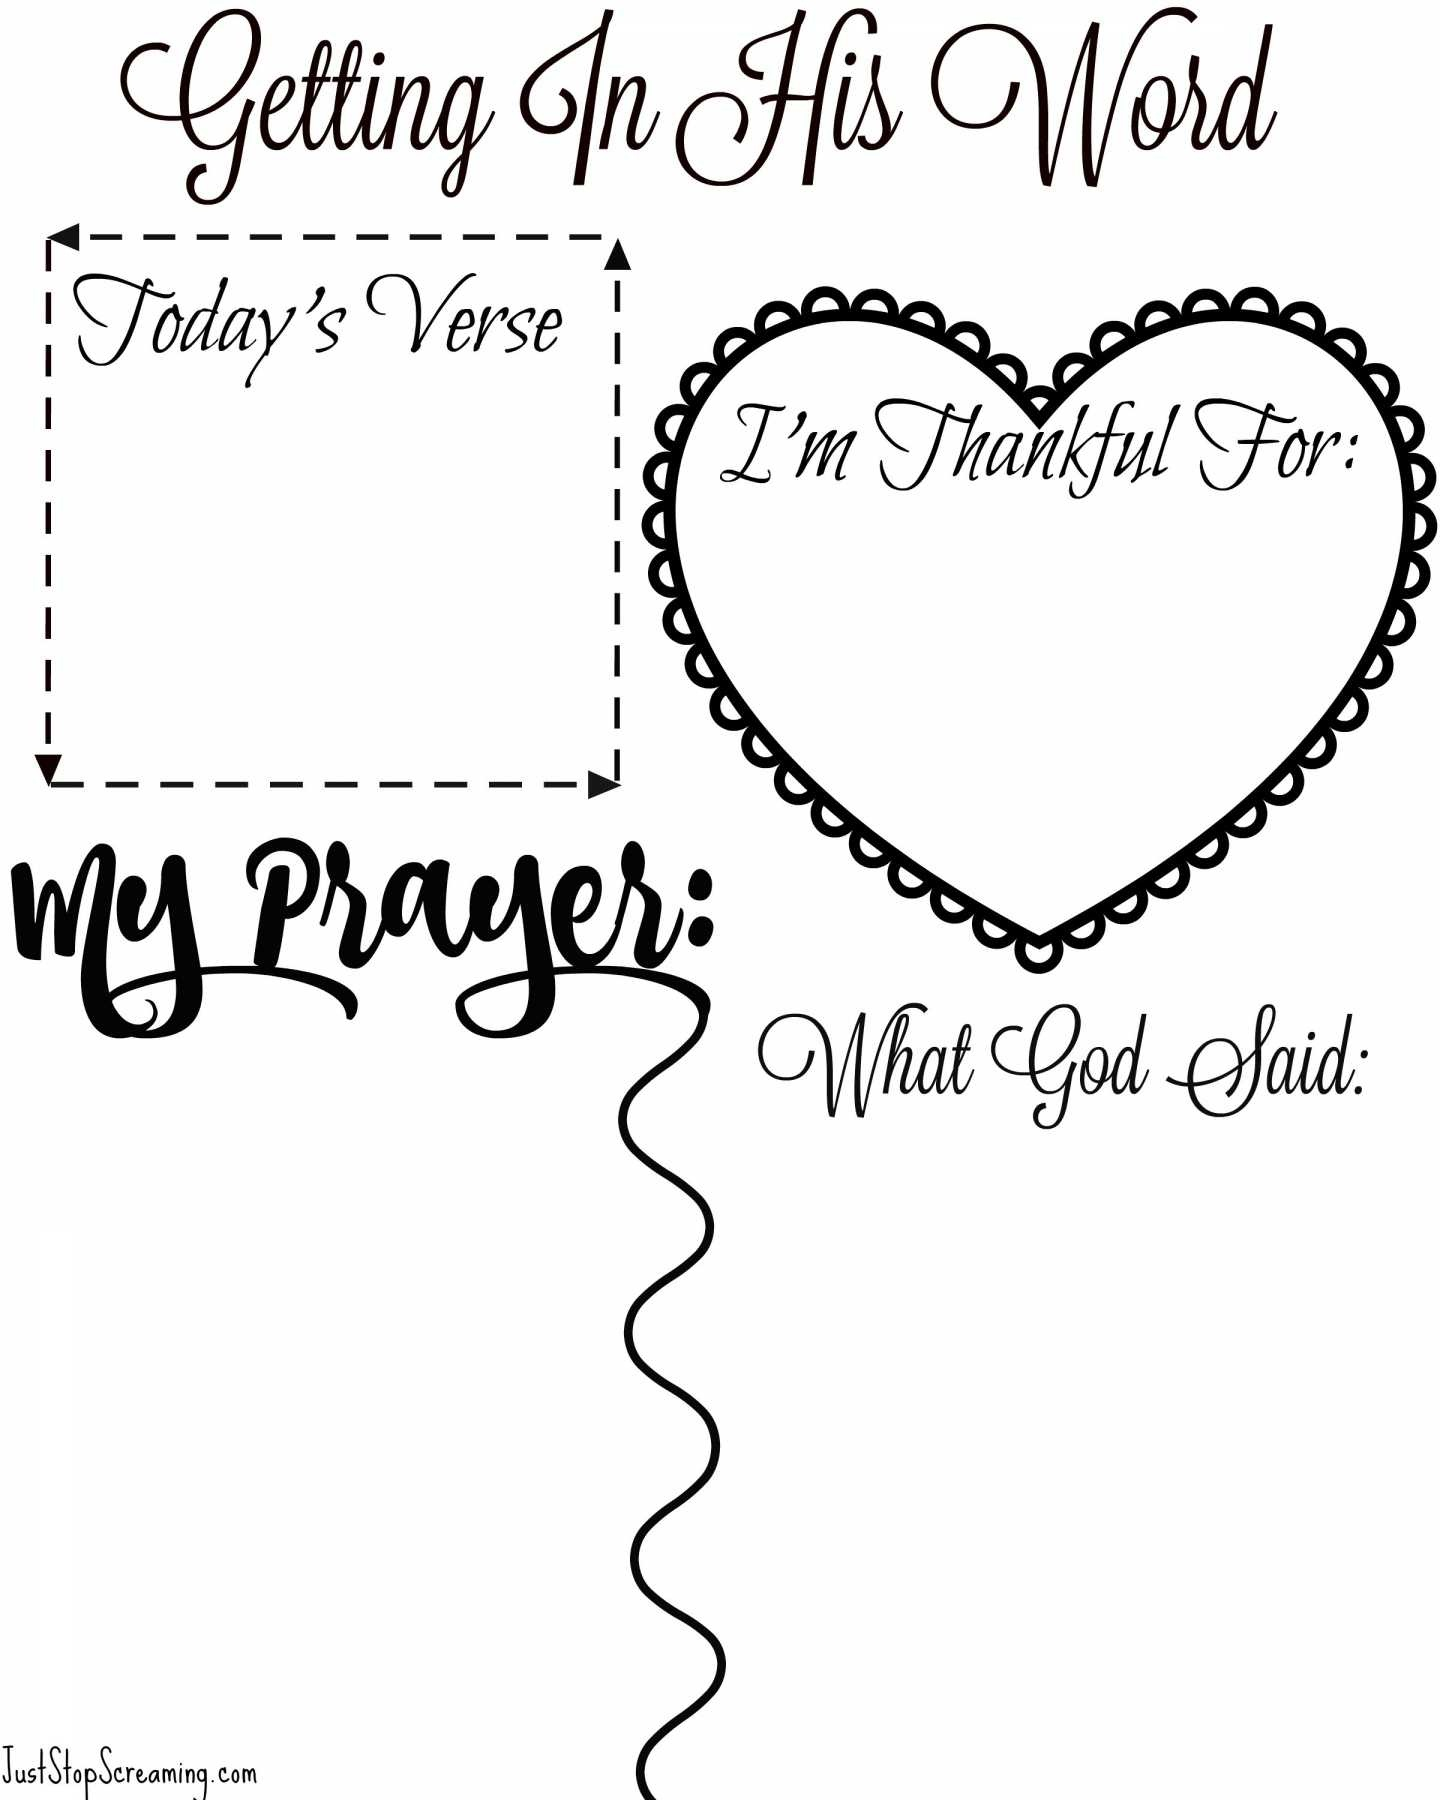 Free Printable Bible Study Worksheets (82+ Images In Collection) Page 1 - Free Printable Bible Studies For Adults